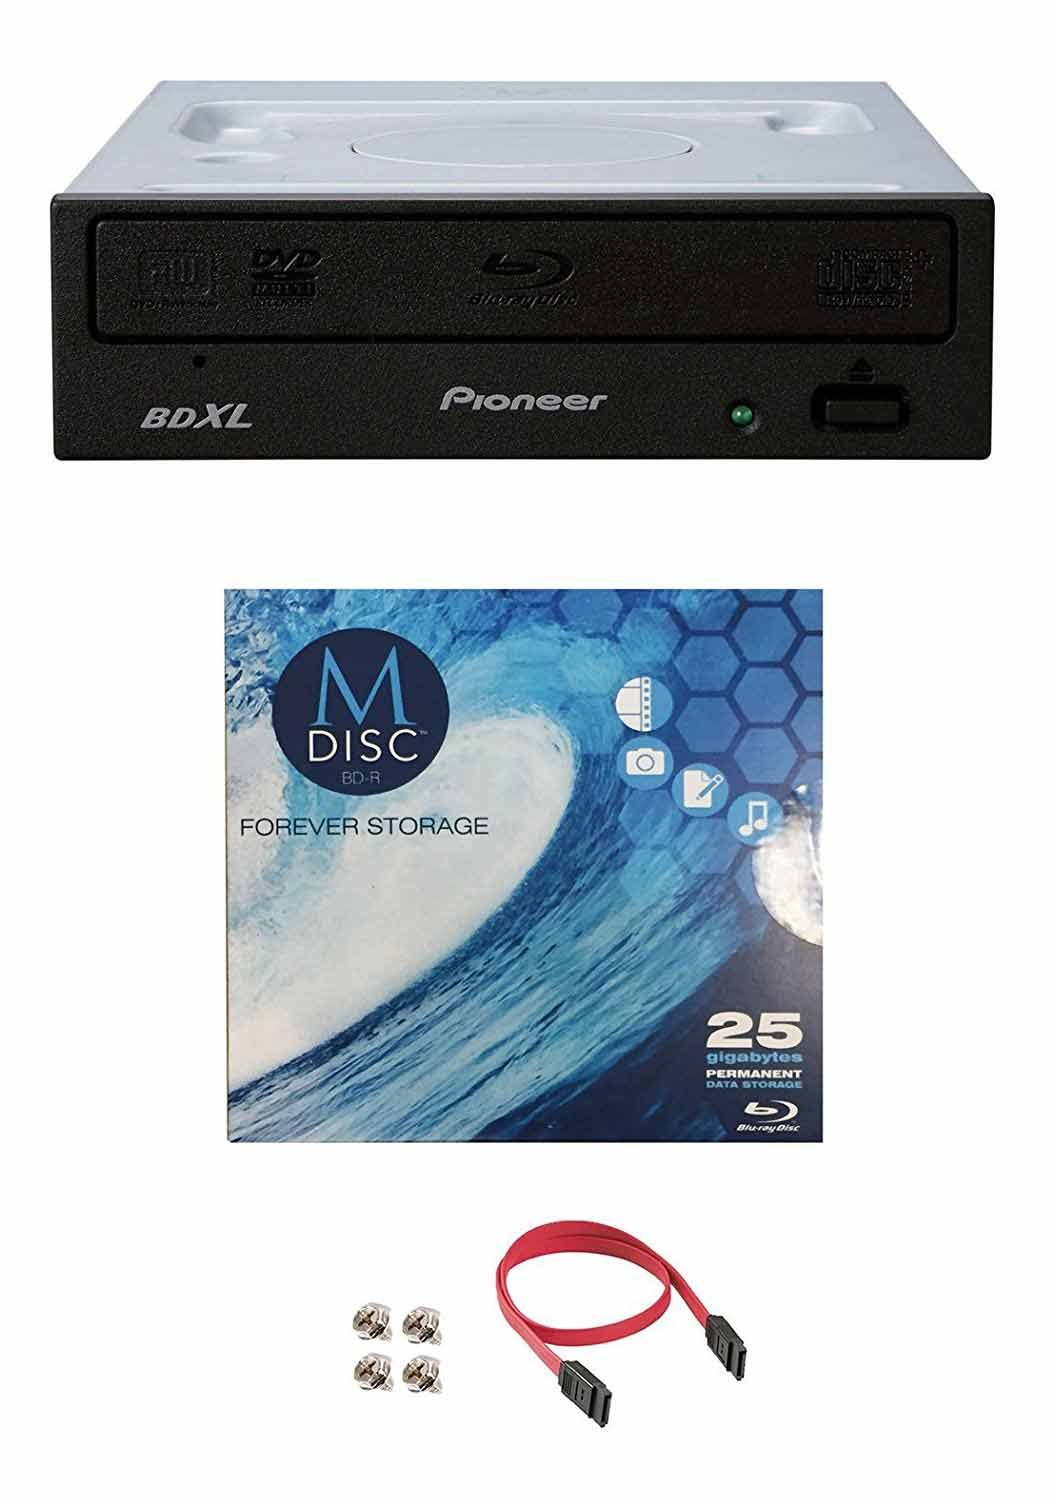 Pioneer 16x BDR-2209 Internal Blu-ray Burner Bundle with 1 Pack M-DISC BD and Cable Accessories (Supports BDXL, SATA Interface)